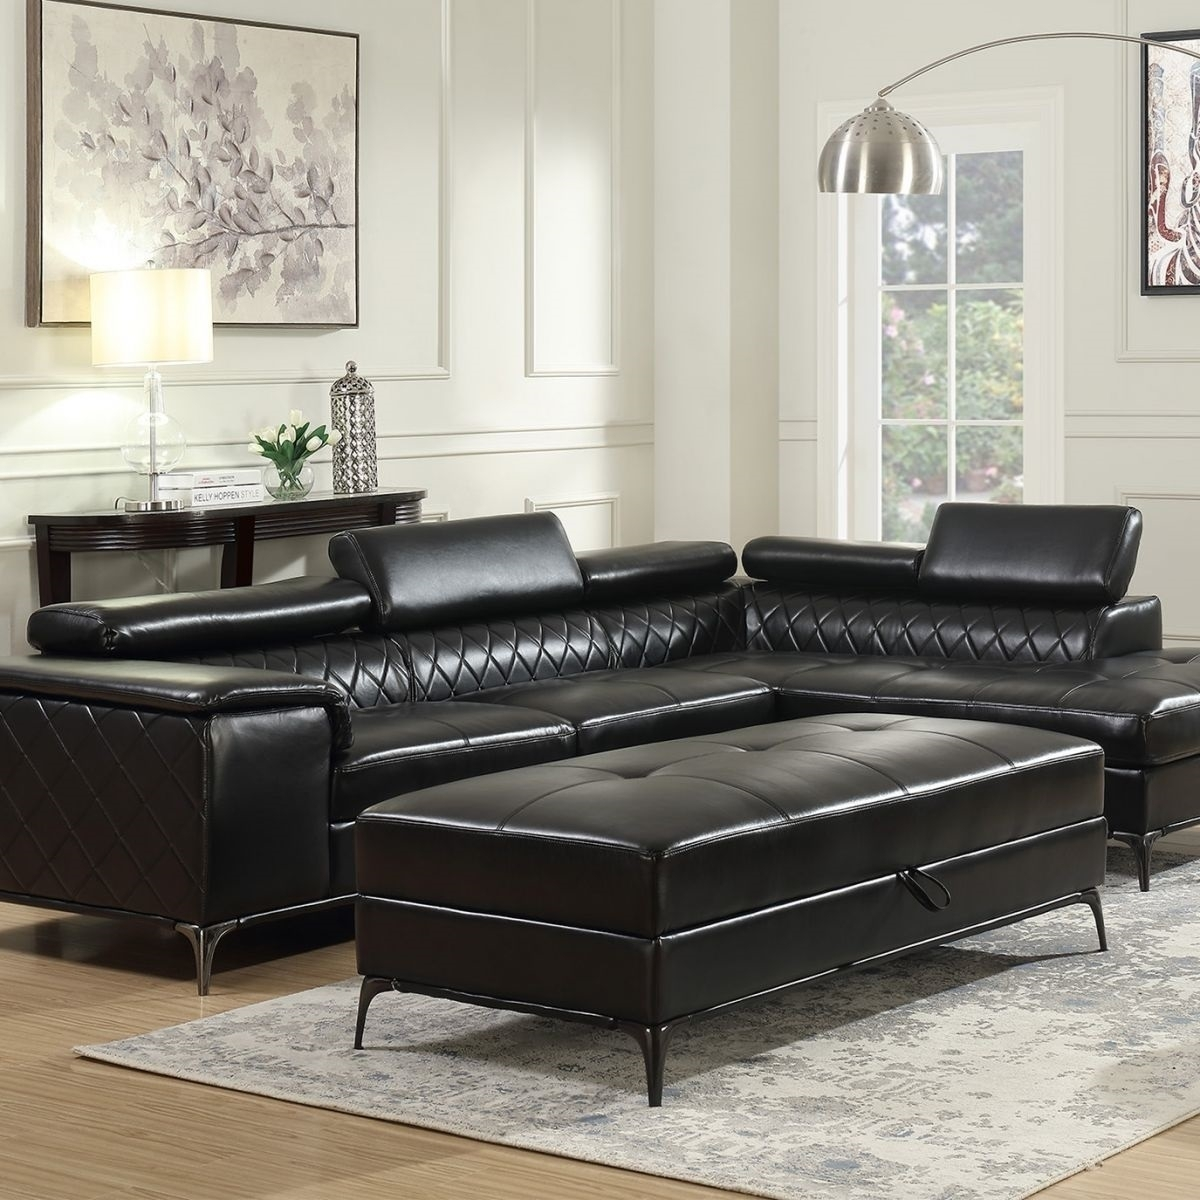 Worthington Black 2 Pc Sectional & Ottoman | Badcock & More For Cosmos Grey 2 Piece Sectionals With Raf Chaise (Photo 22 of 30)